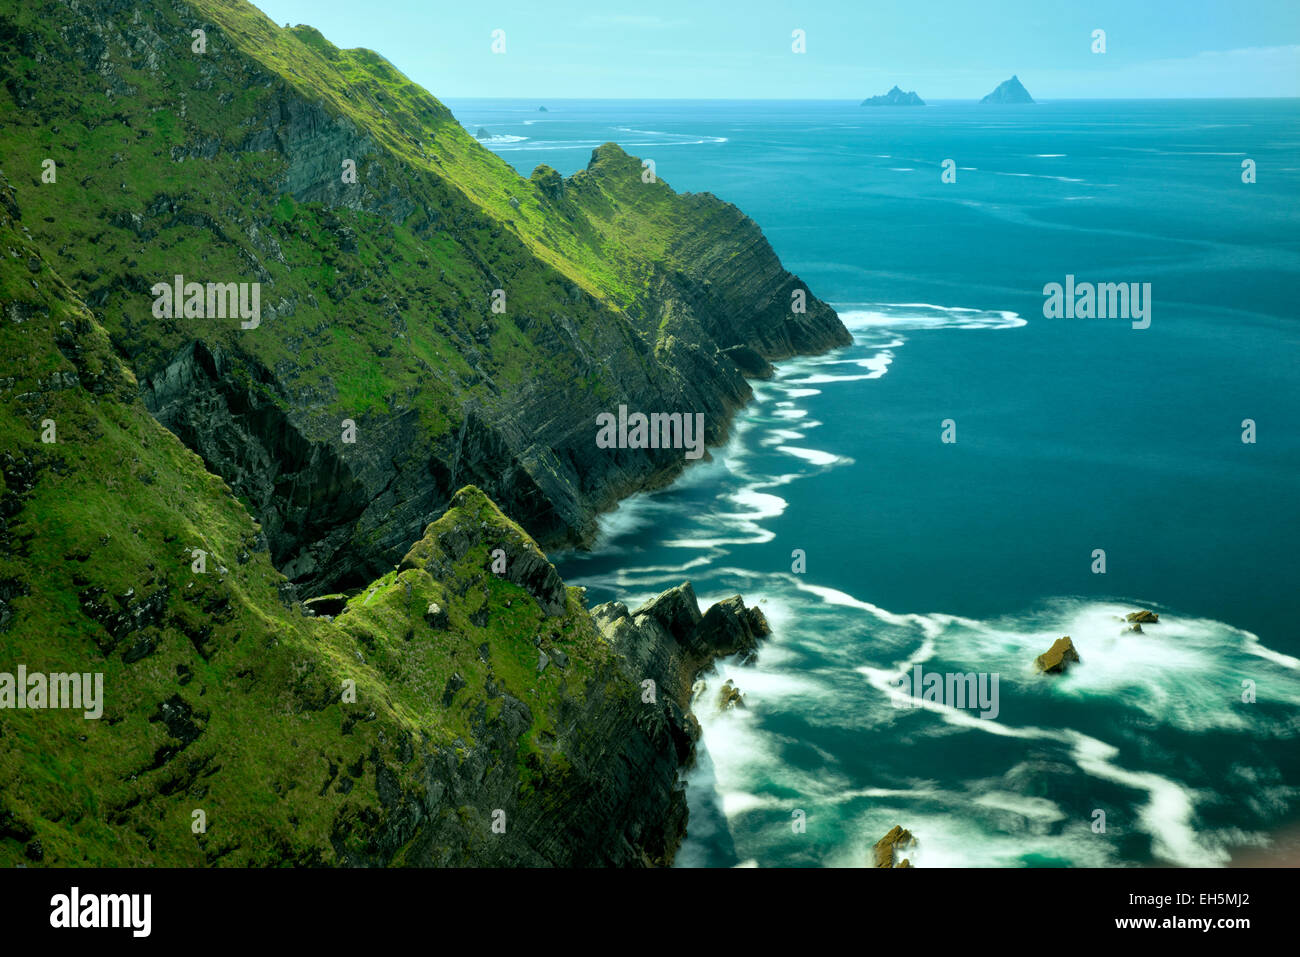 Kerry cliffs with wave foam on water. Portmagee, Ring of Kerry, Ireland. Skellig Rocks in distance - Stock Image